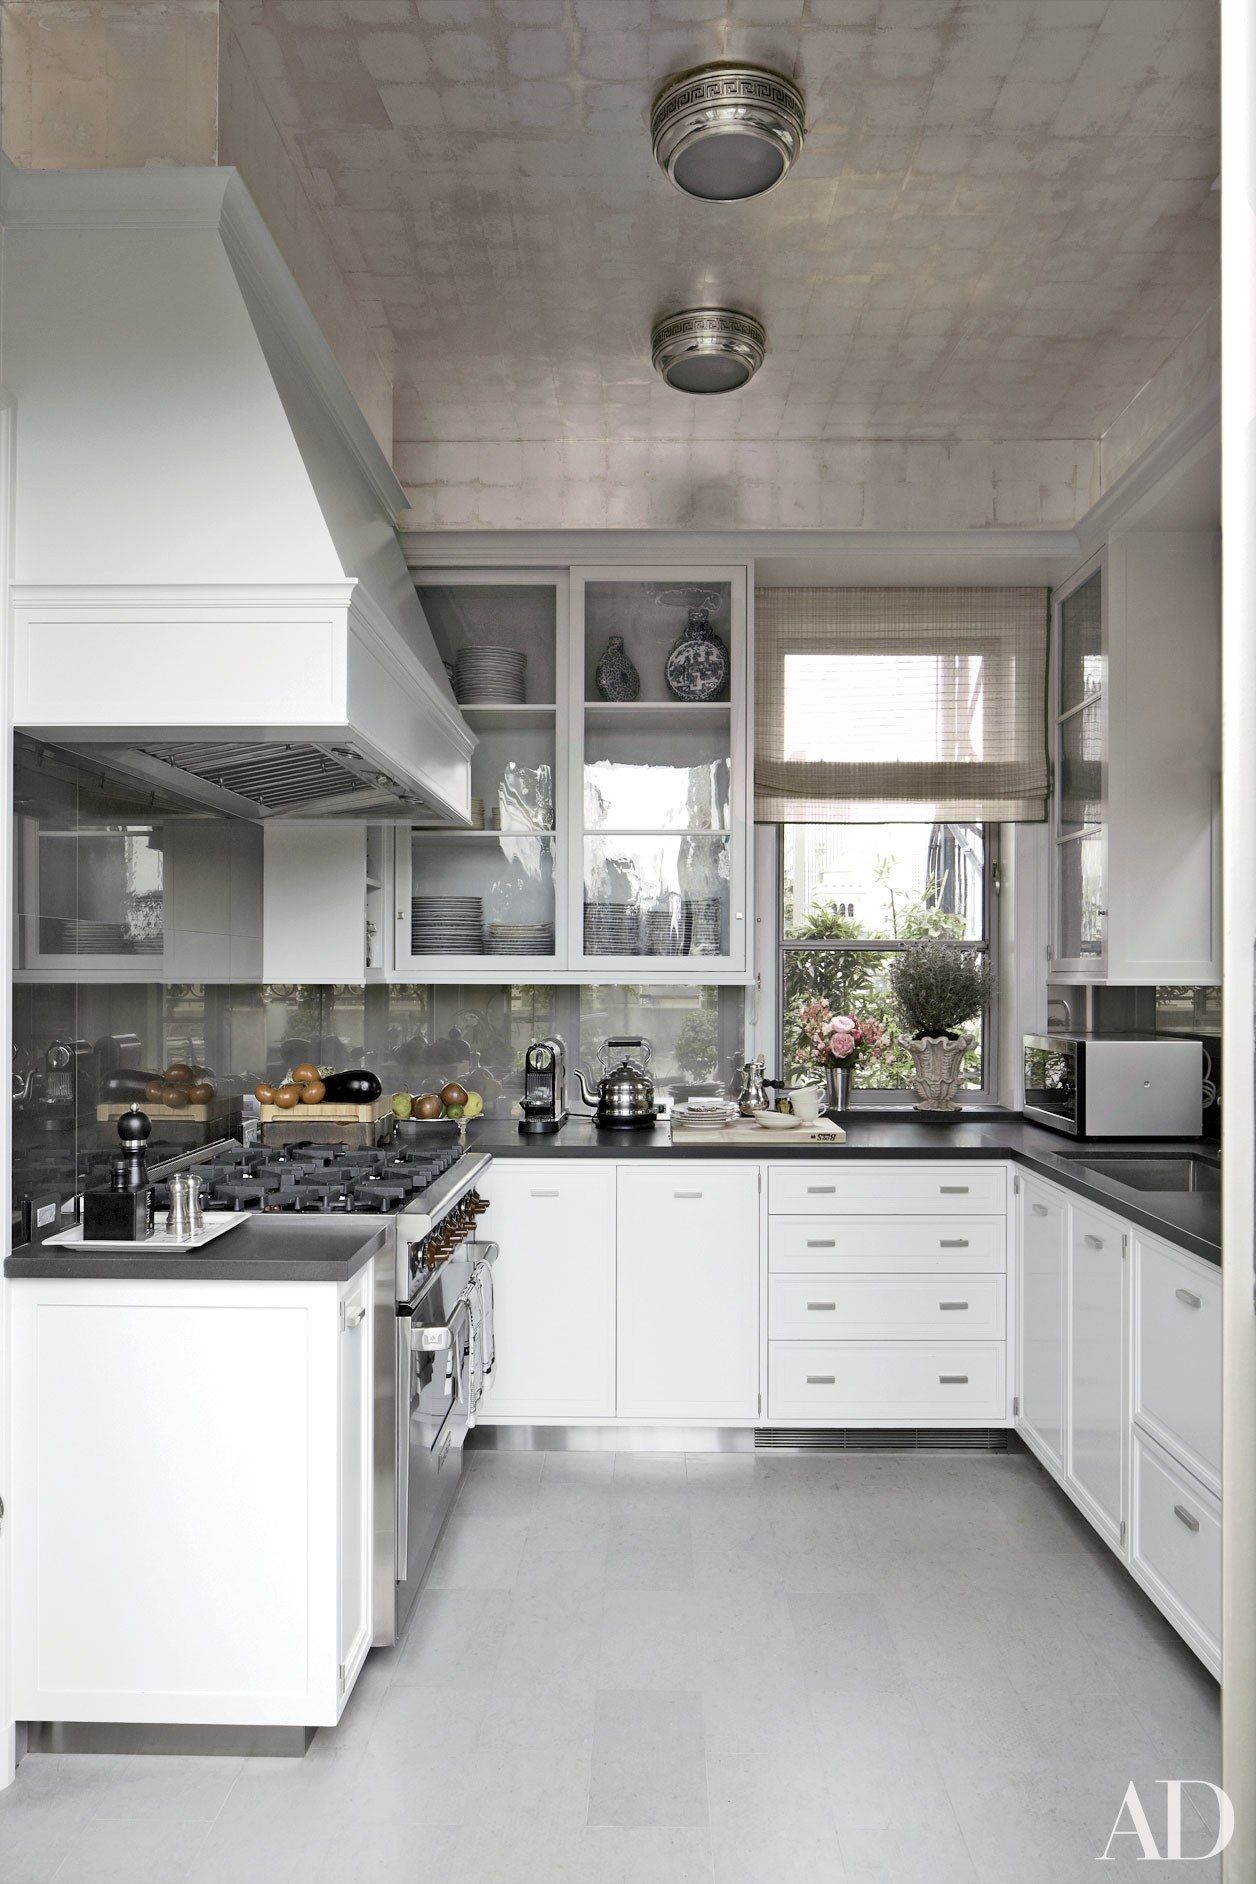 Michael S. Smithu0027s Manhattan Kitchen Has A Wolf Range, E. R. Butler U0026 Co.  Cabinet Hardware, A Silver Leafed Ceiling, And A Floor Of French Blue  Limestone By ...